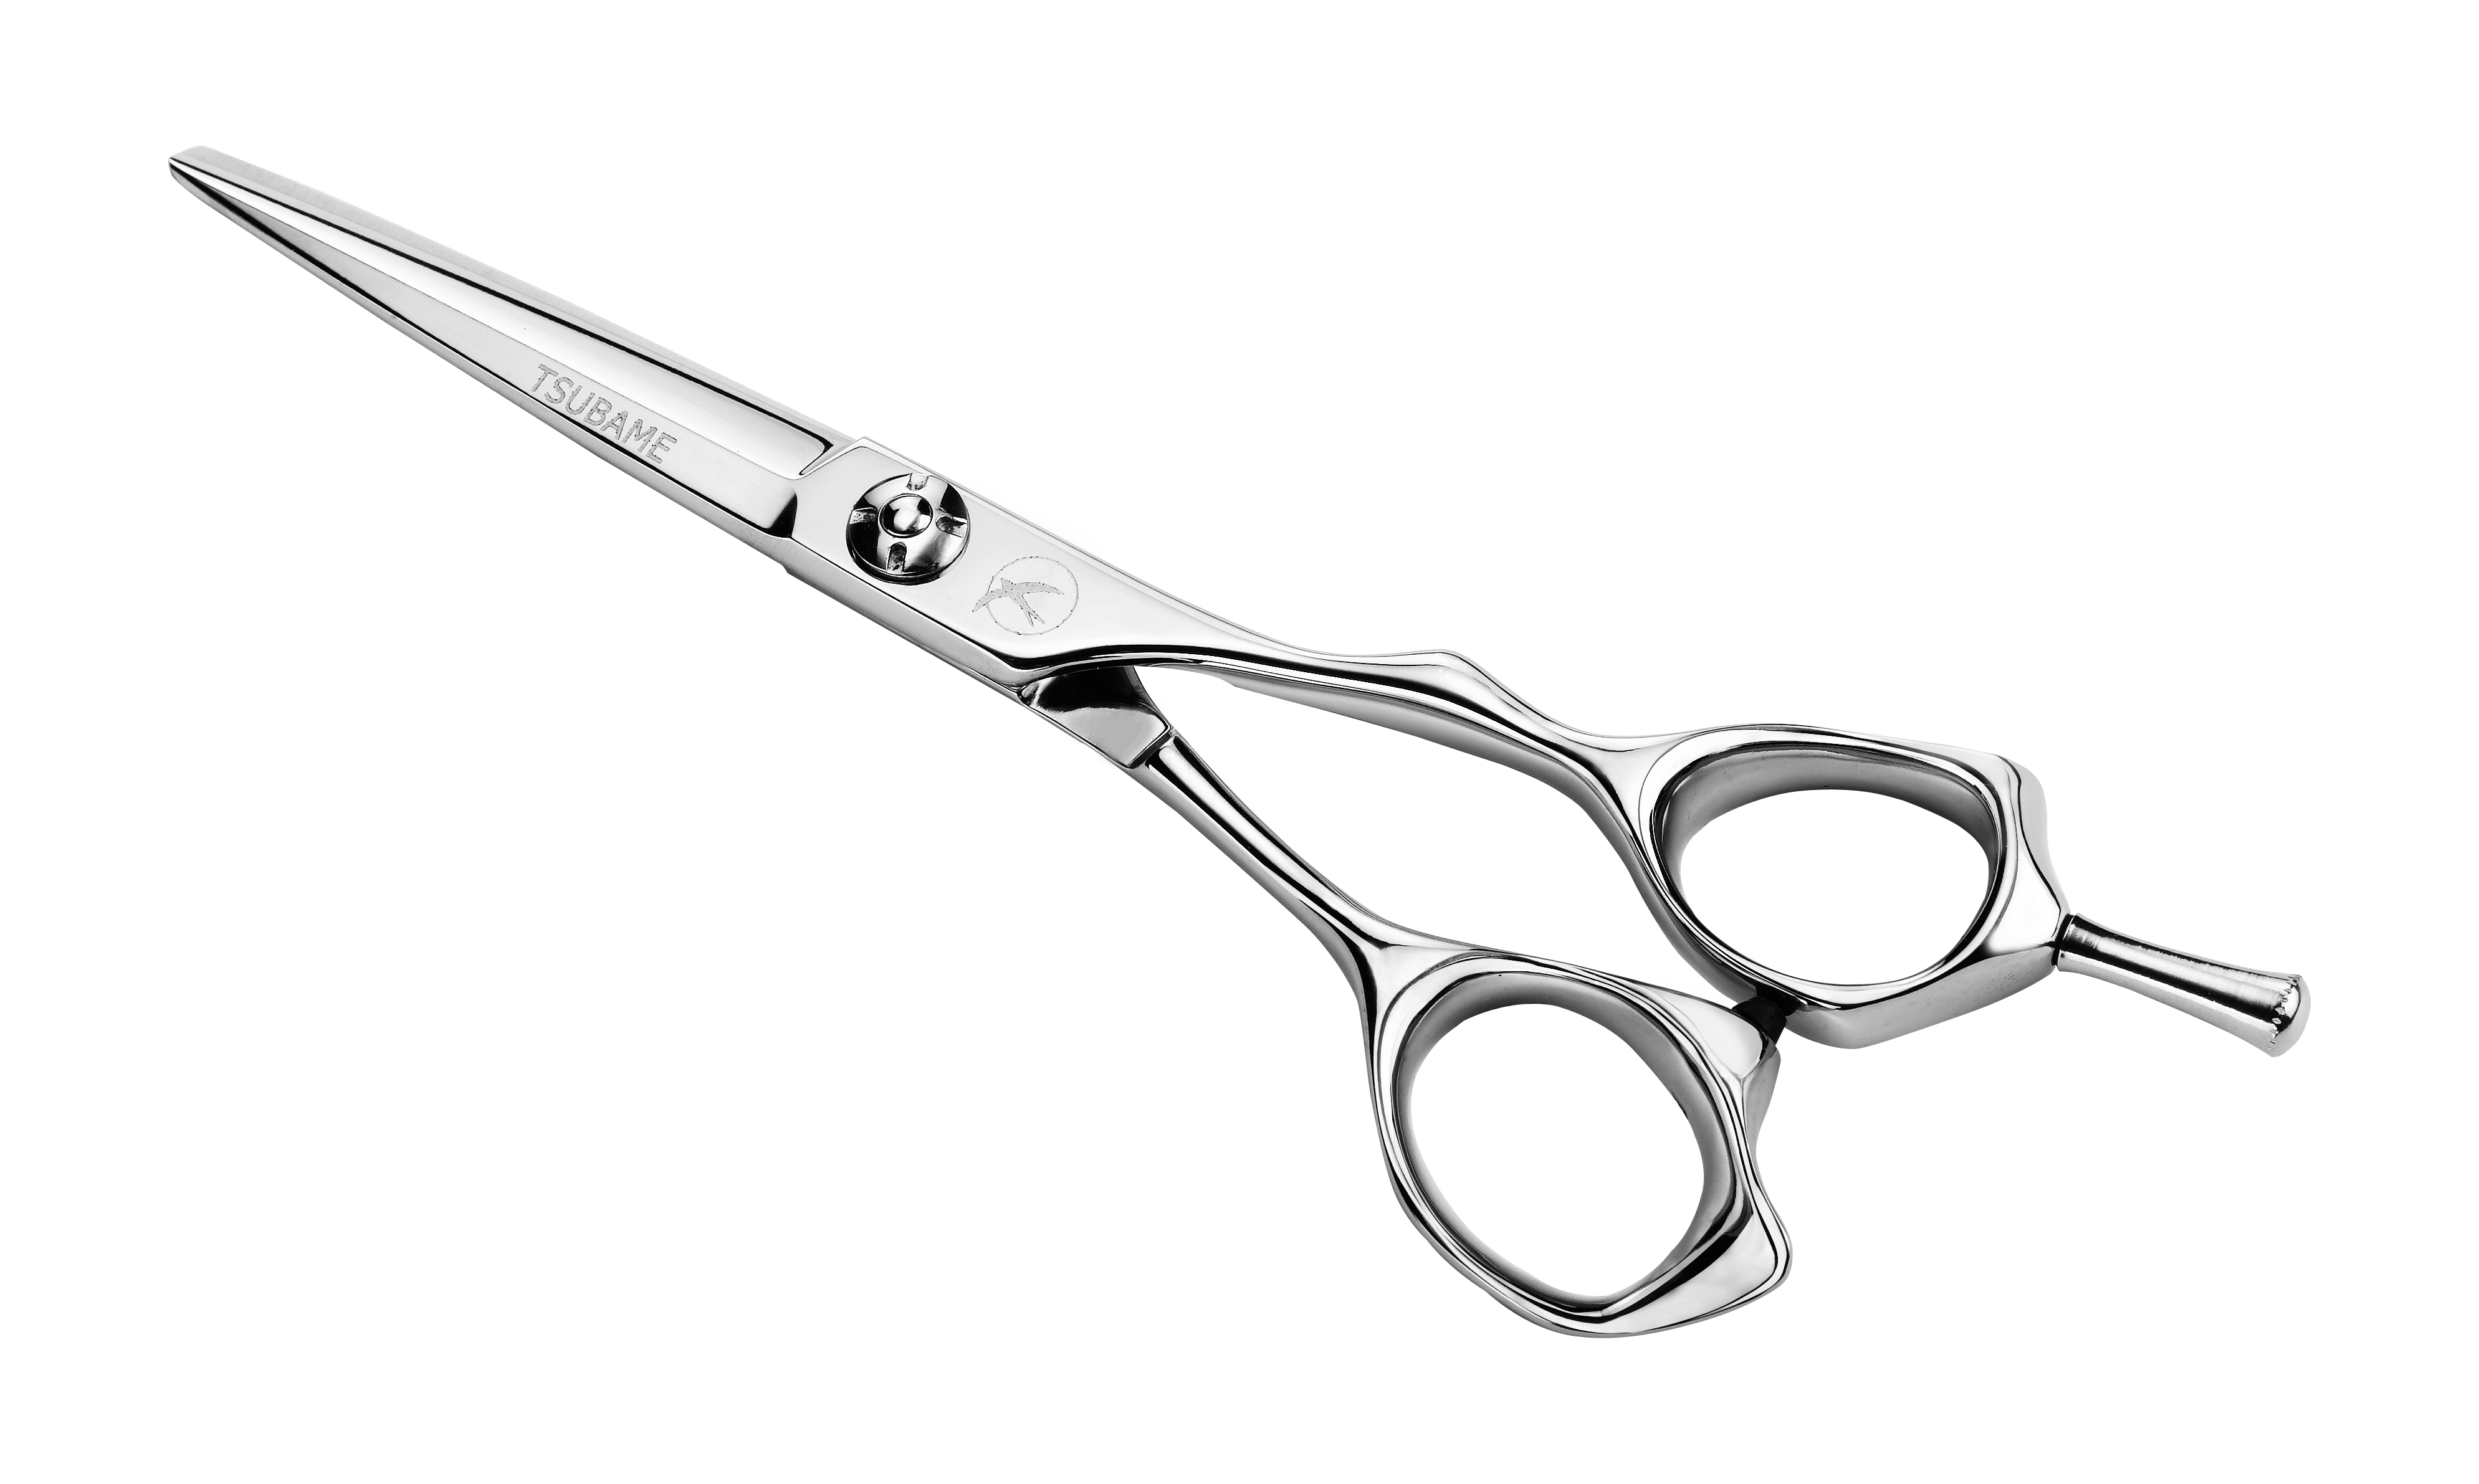 Pictures Of Hair Scissors - Cliparts.co